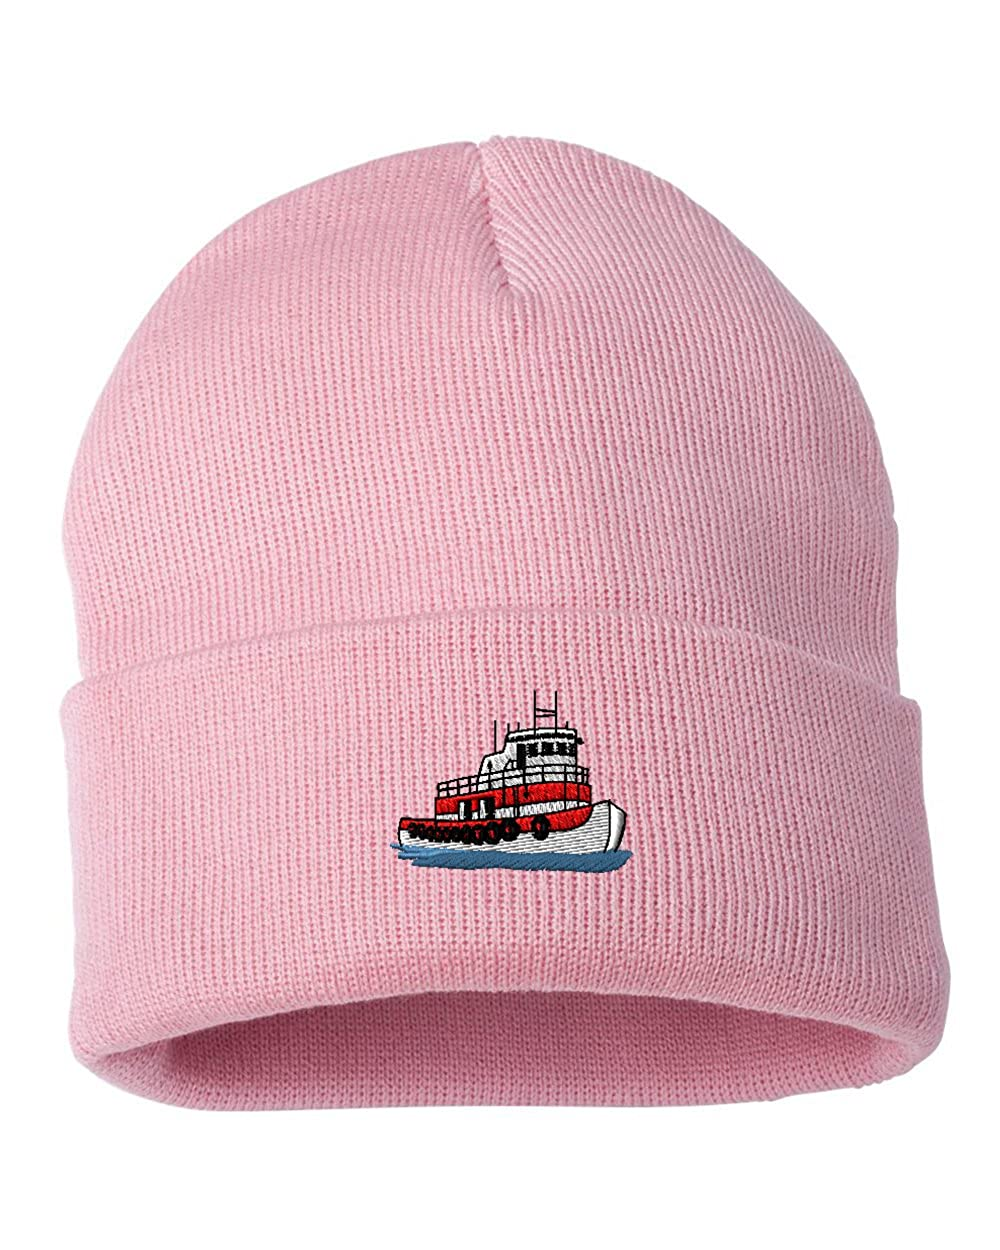 Tugboat Custom Personalized Embroidery Embroidered Beanie